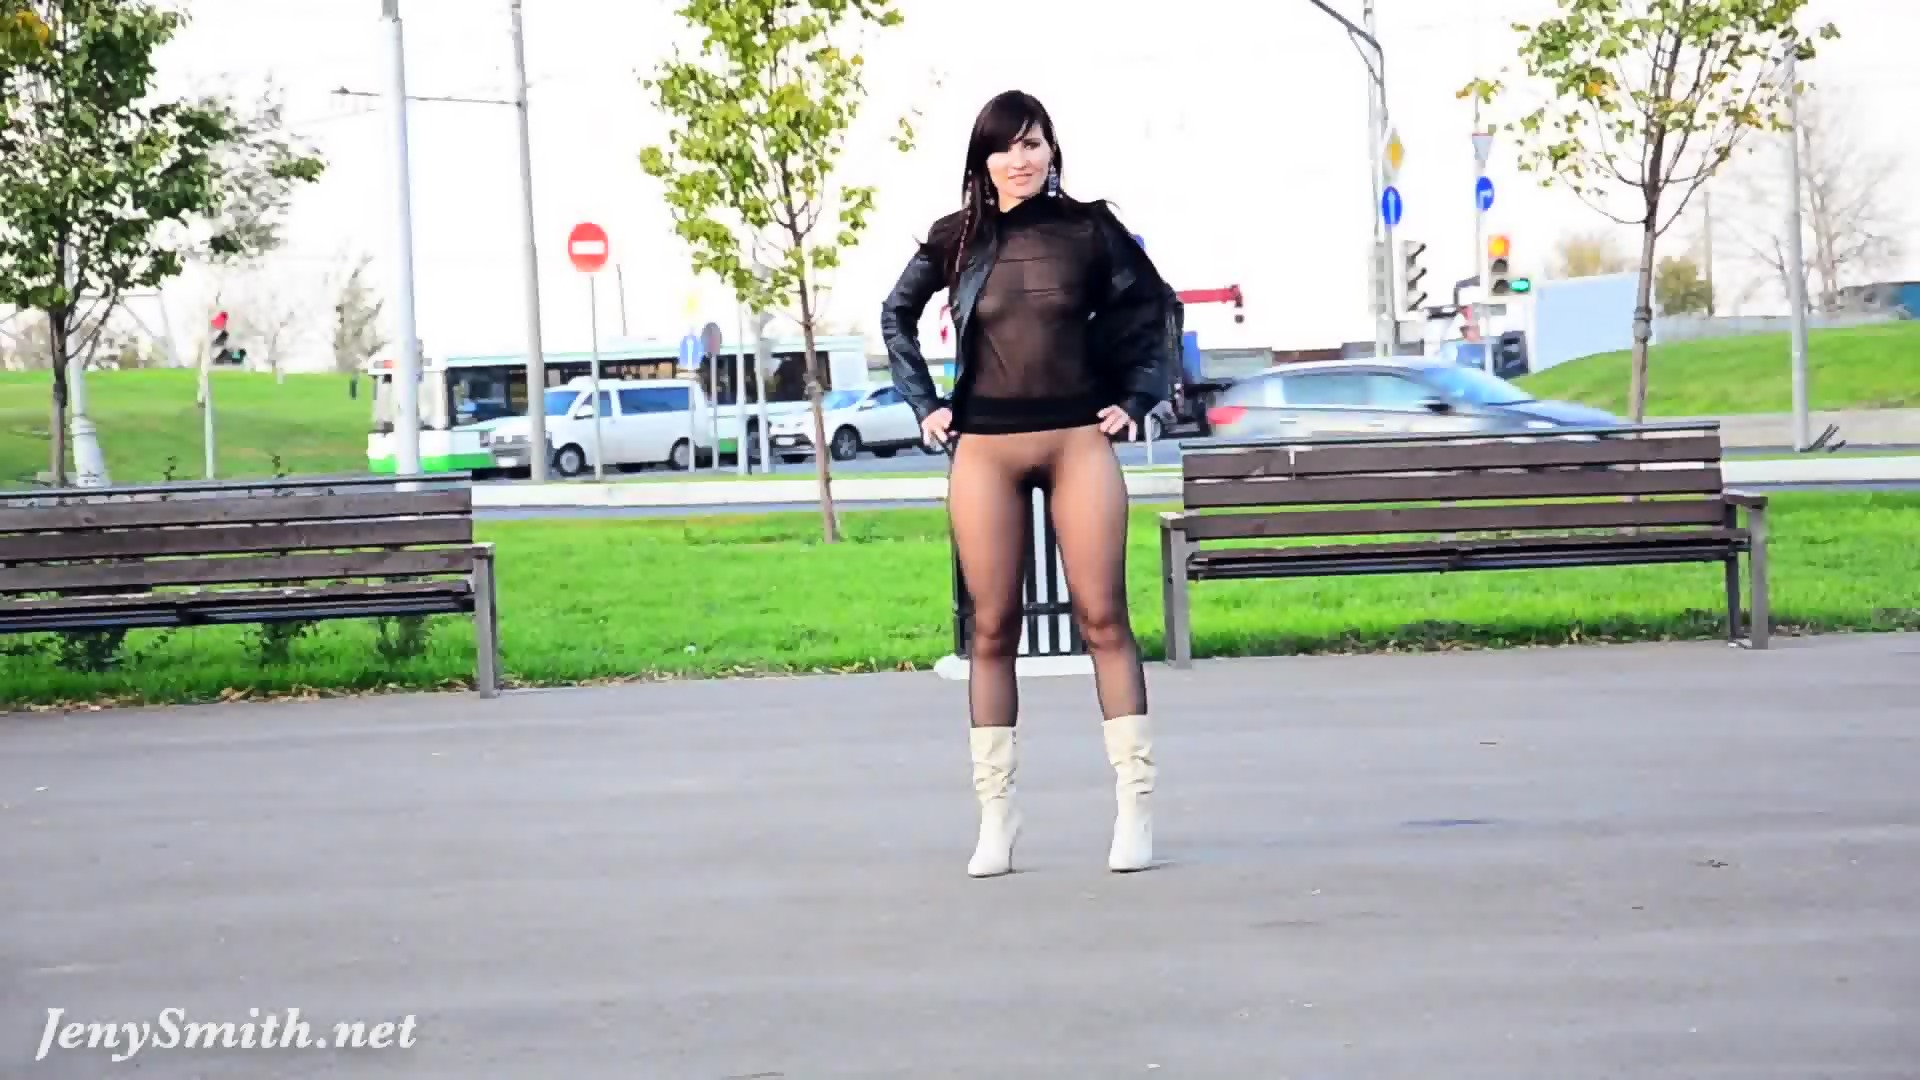 Jeny smith pantyhose suit in public 5